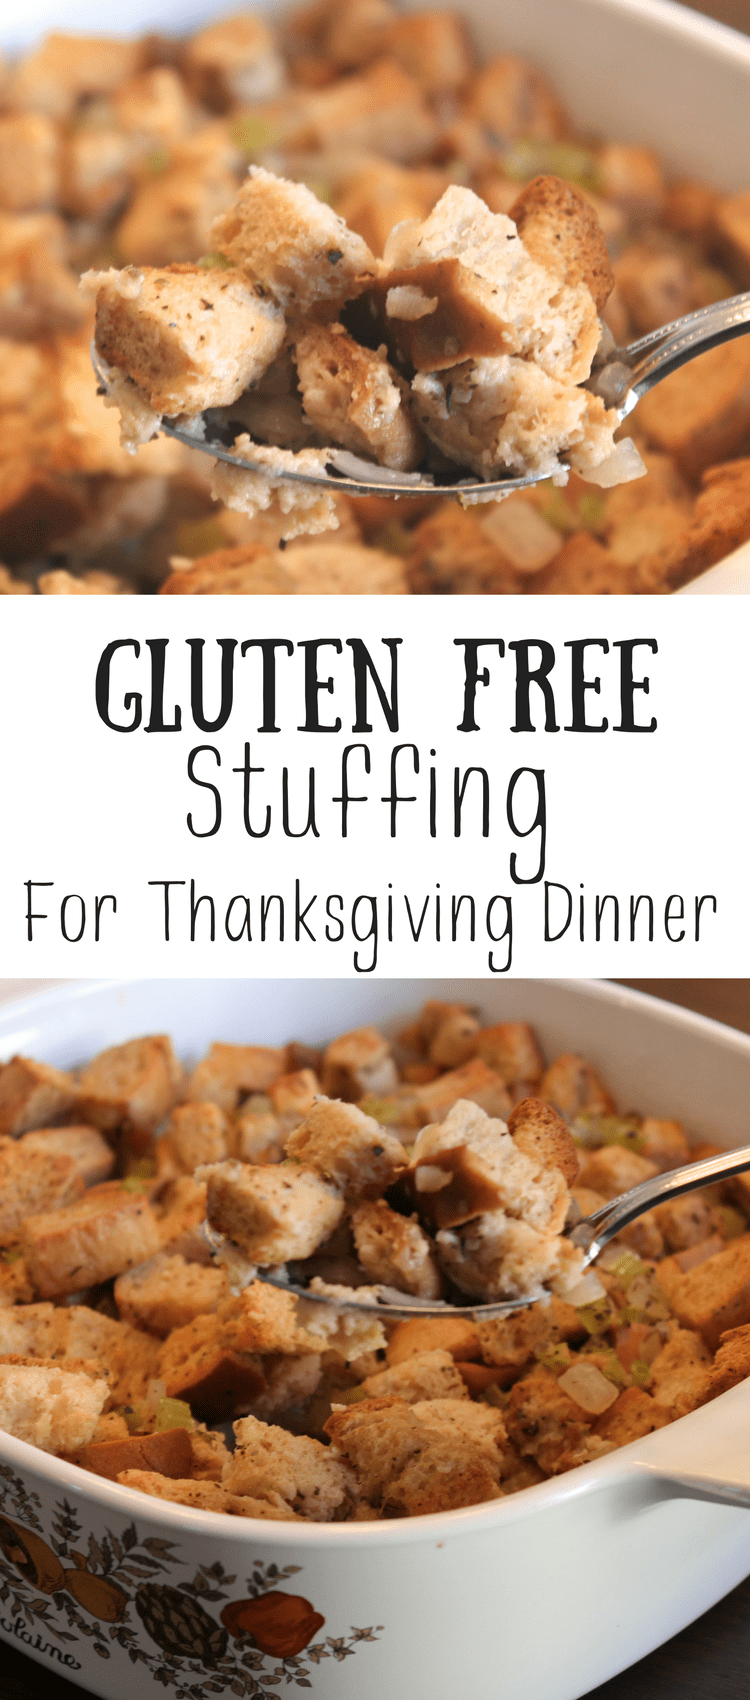 Stuffing is a staple at our table at Thanksgiving.  I've always loved it during the holiday season, but now that I can't eat gluten, I had to come up with a solution.  Gluten free stuffing is just as flavorful as the regular stuff, but it's without the gluten that will make me sick.  Definitely try this!